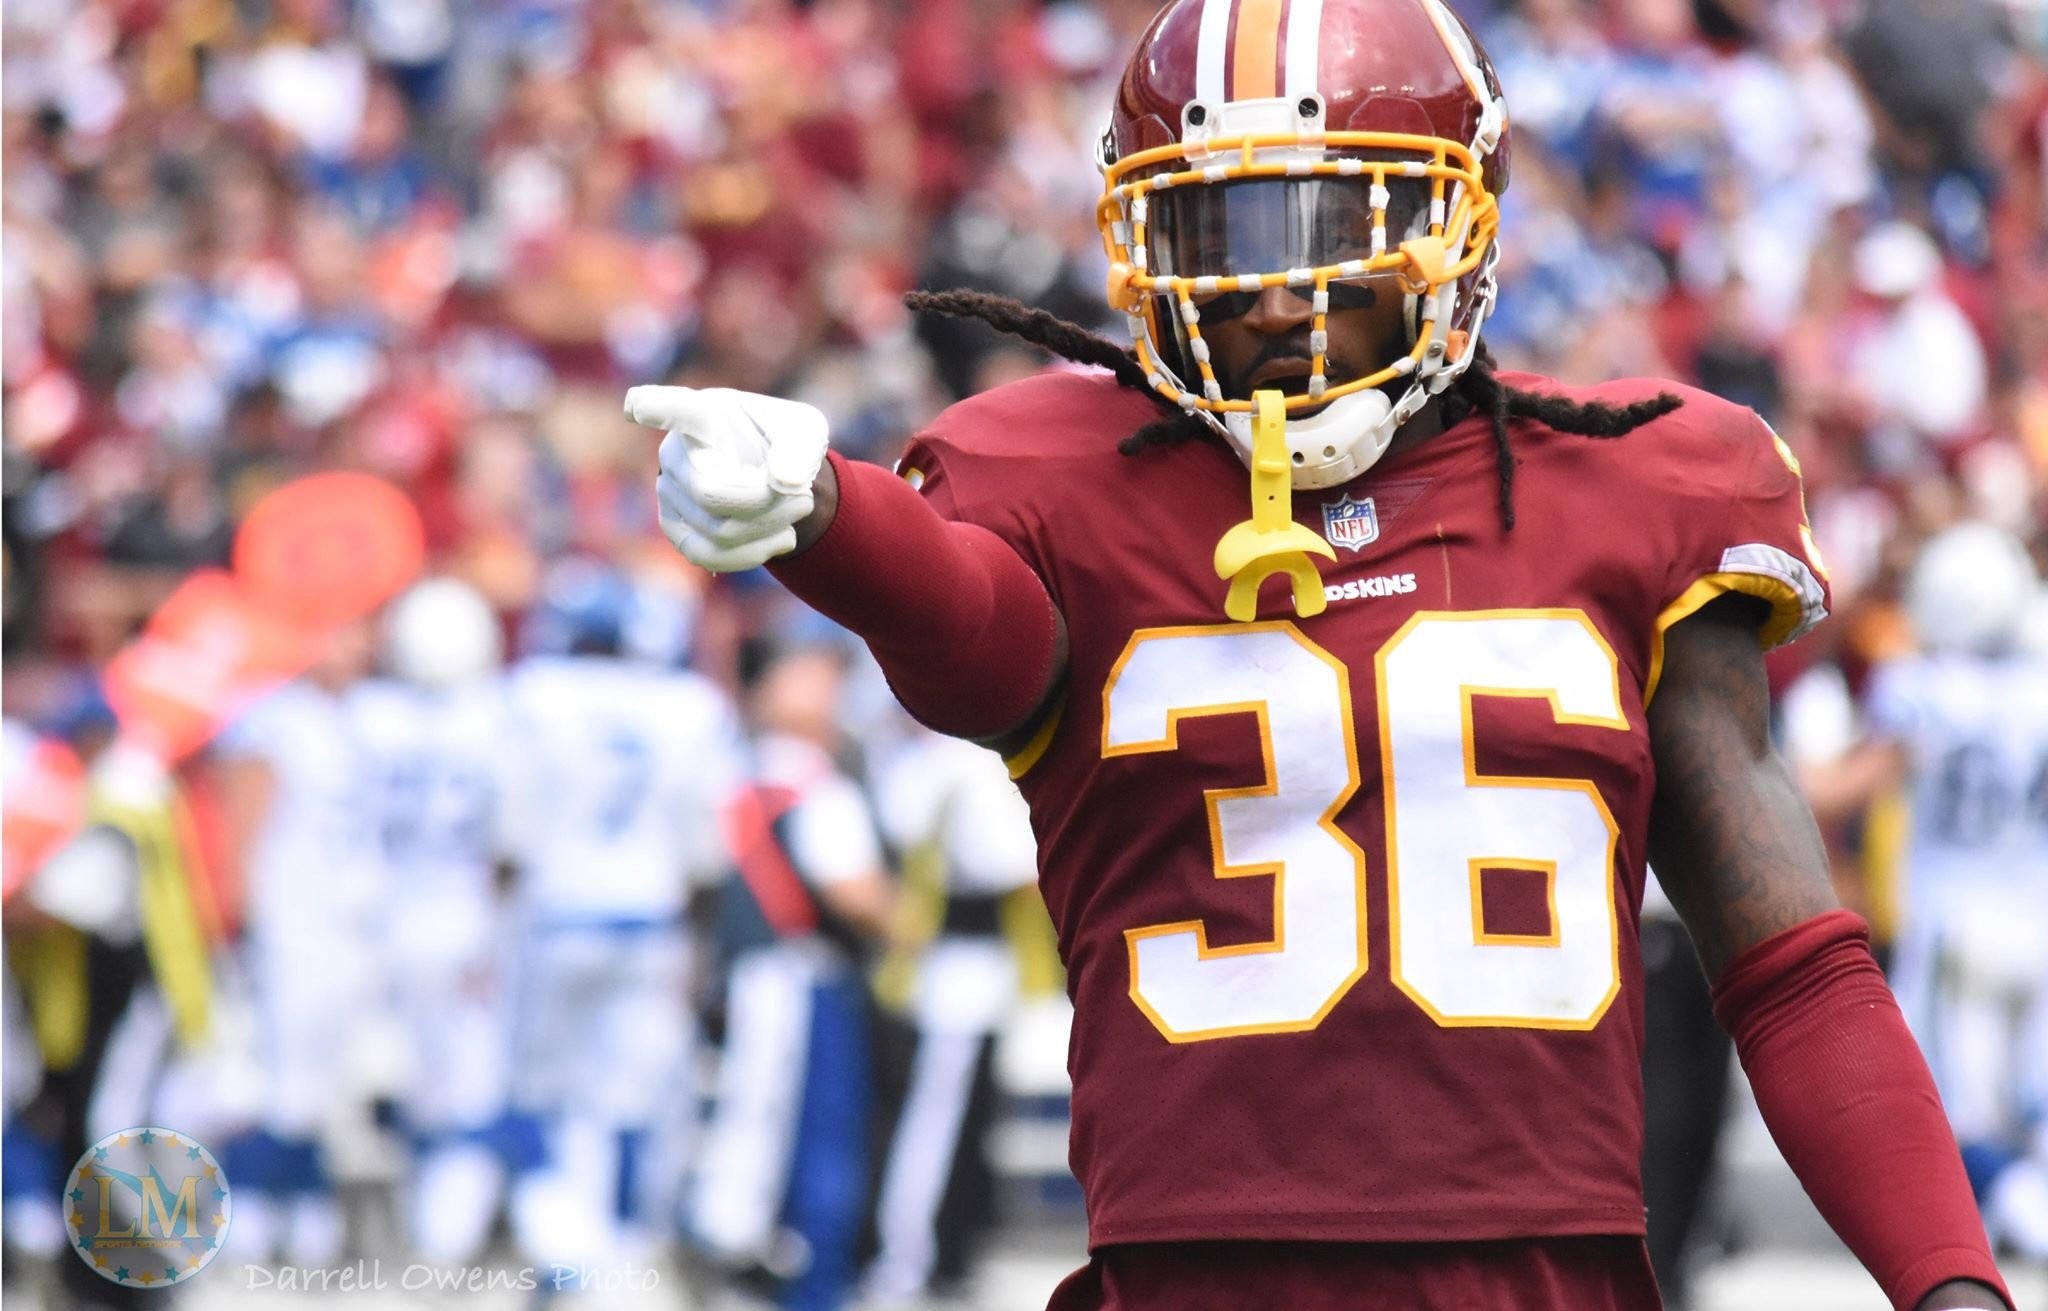 Redskins D.J. Swearinger